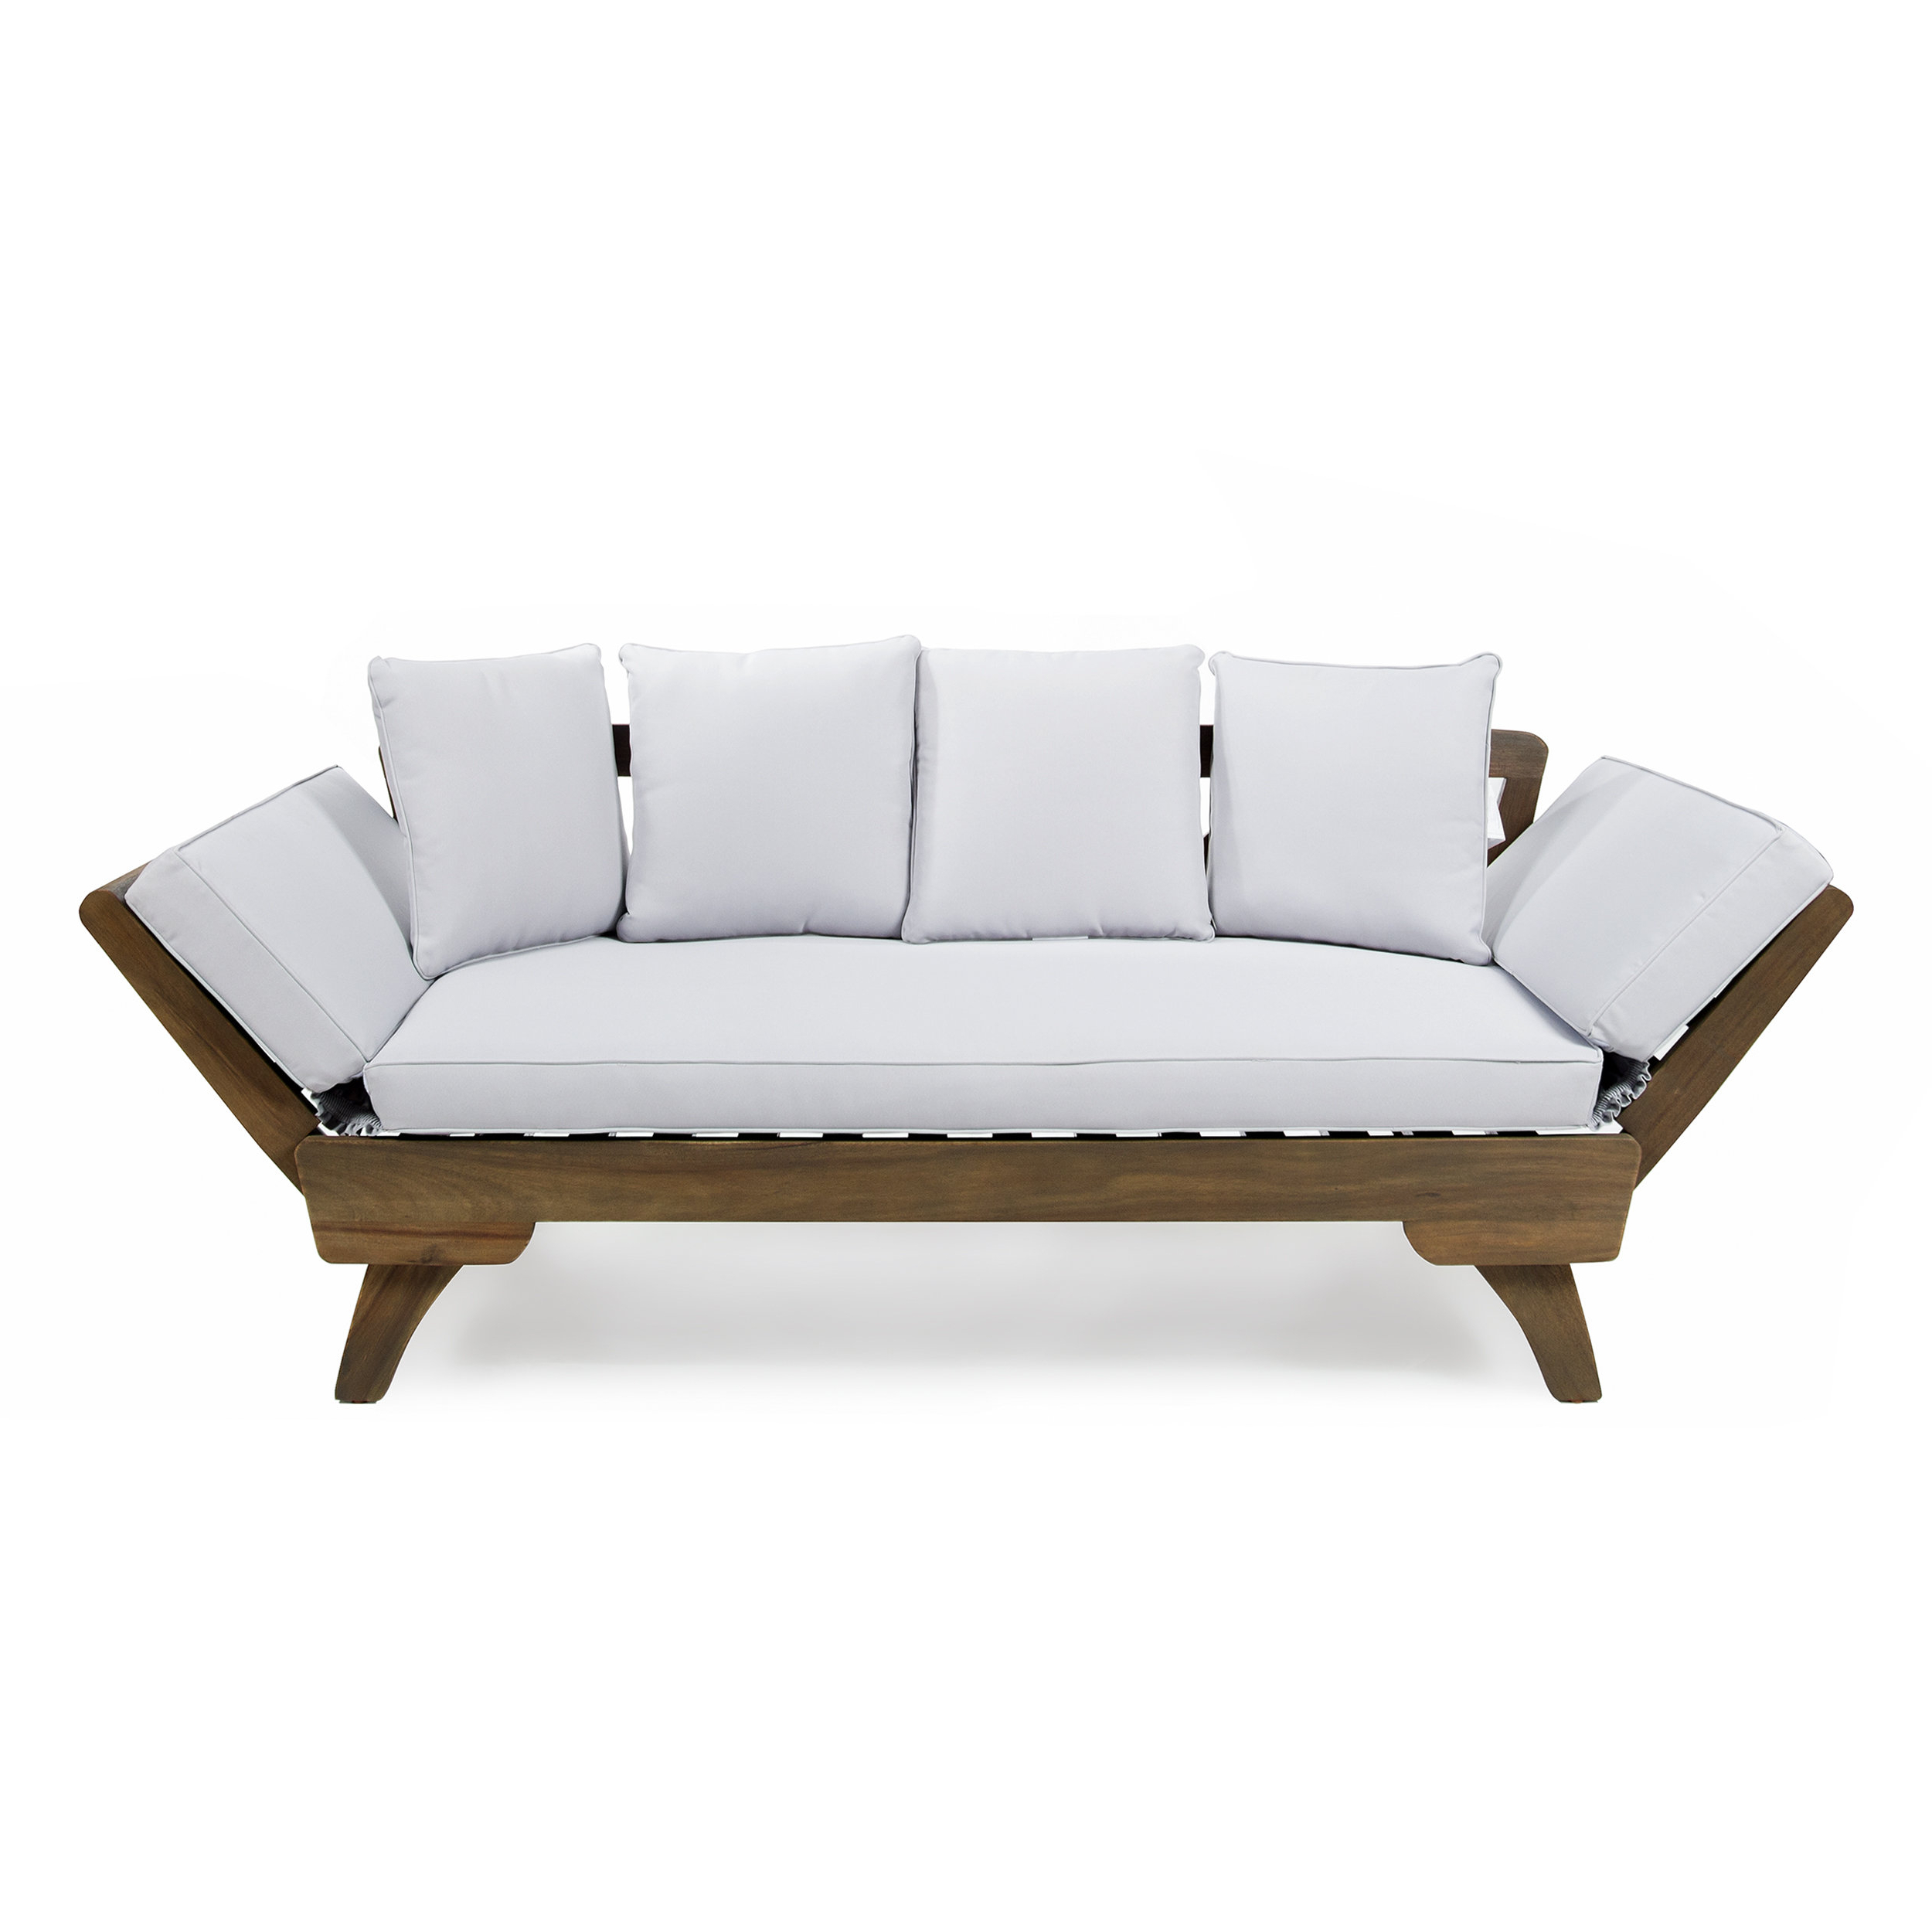 Roush Teak Patio Daybeds With Cushions With Most Up To Date Union Rustic Ellanti Teak Patio Daybed With Cushions (View 17 of 20)